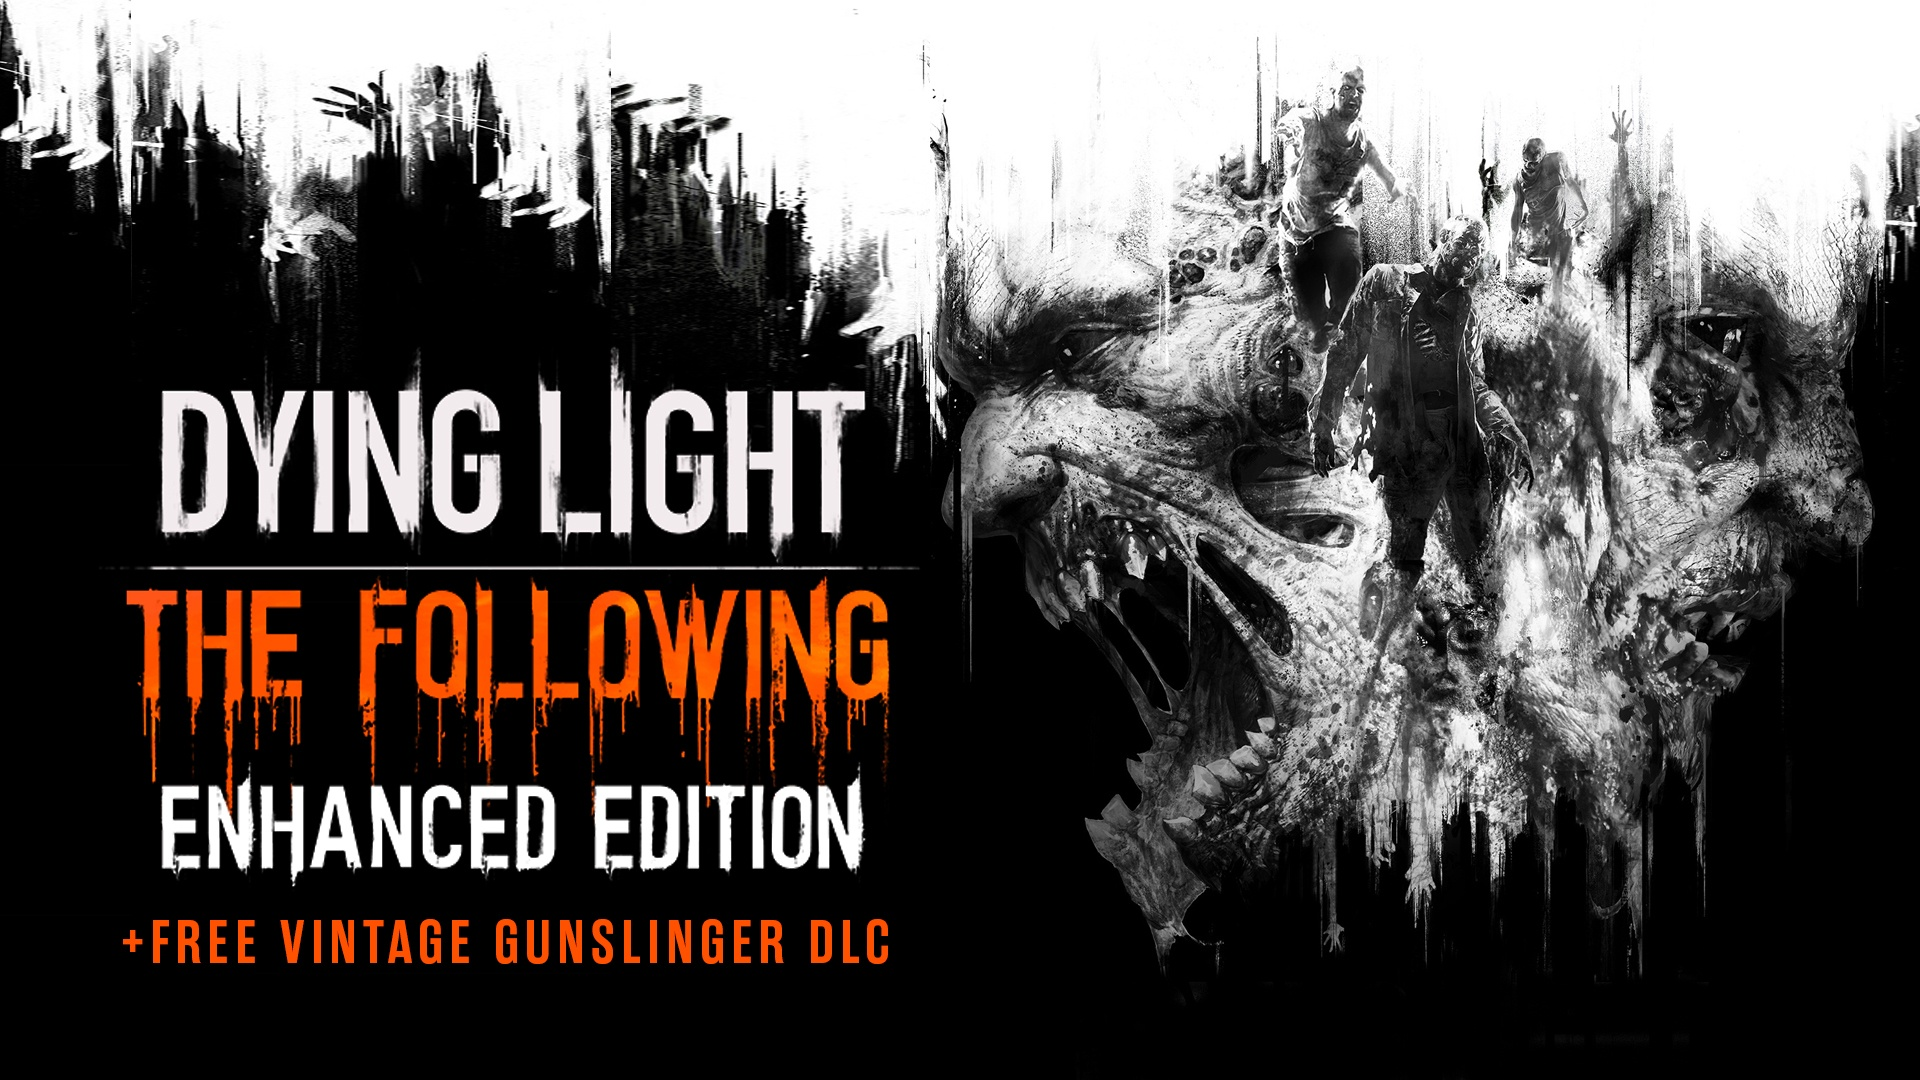 Dying Light - Enhanced Edition (plus free Vintage Gunslinger DLC